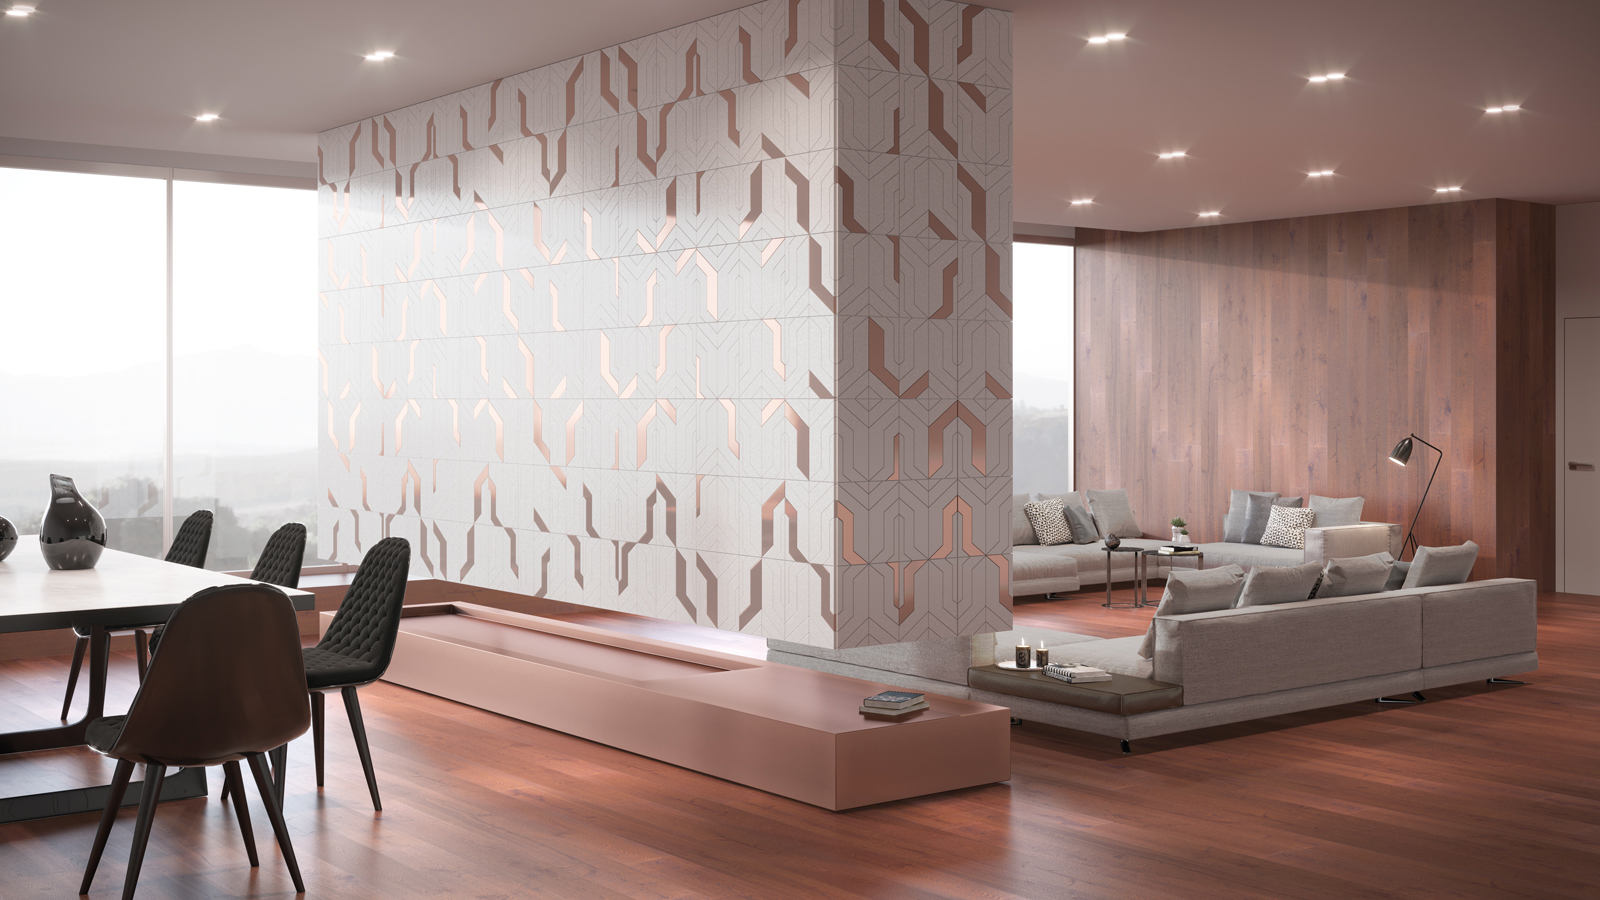 Focus, by L'Antic Colonial: an artistic collage crafted in natural stone